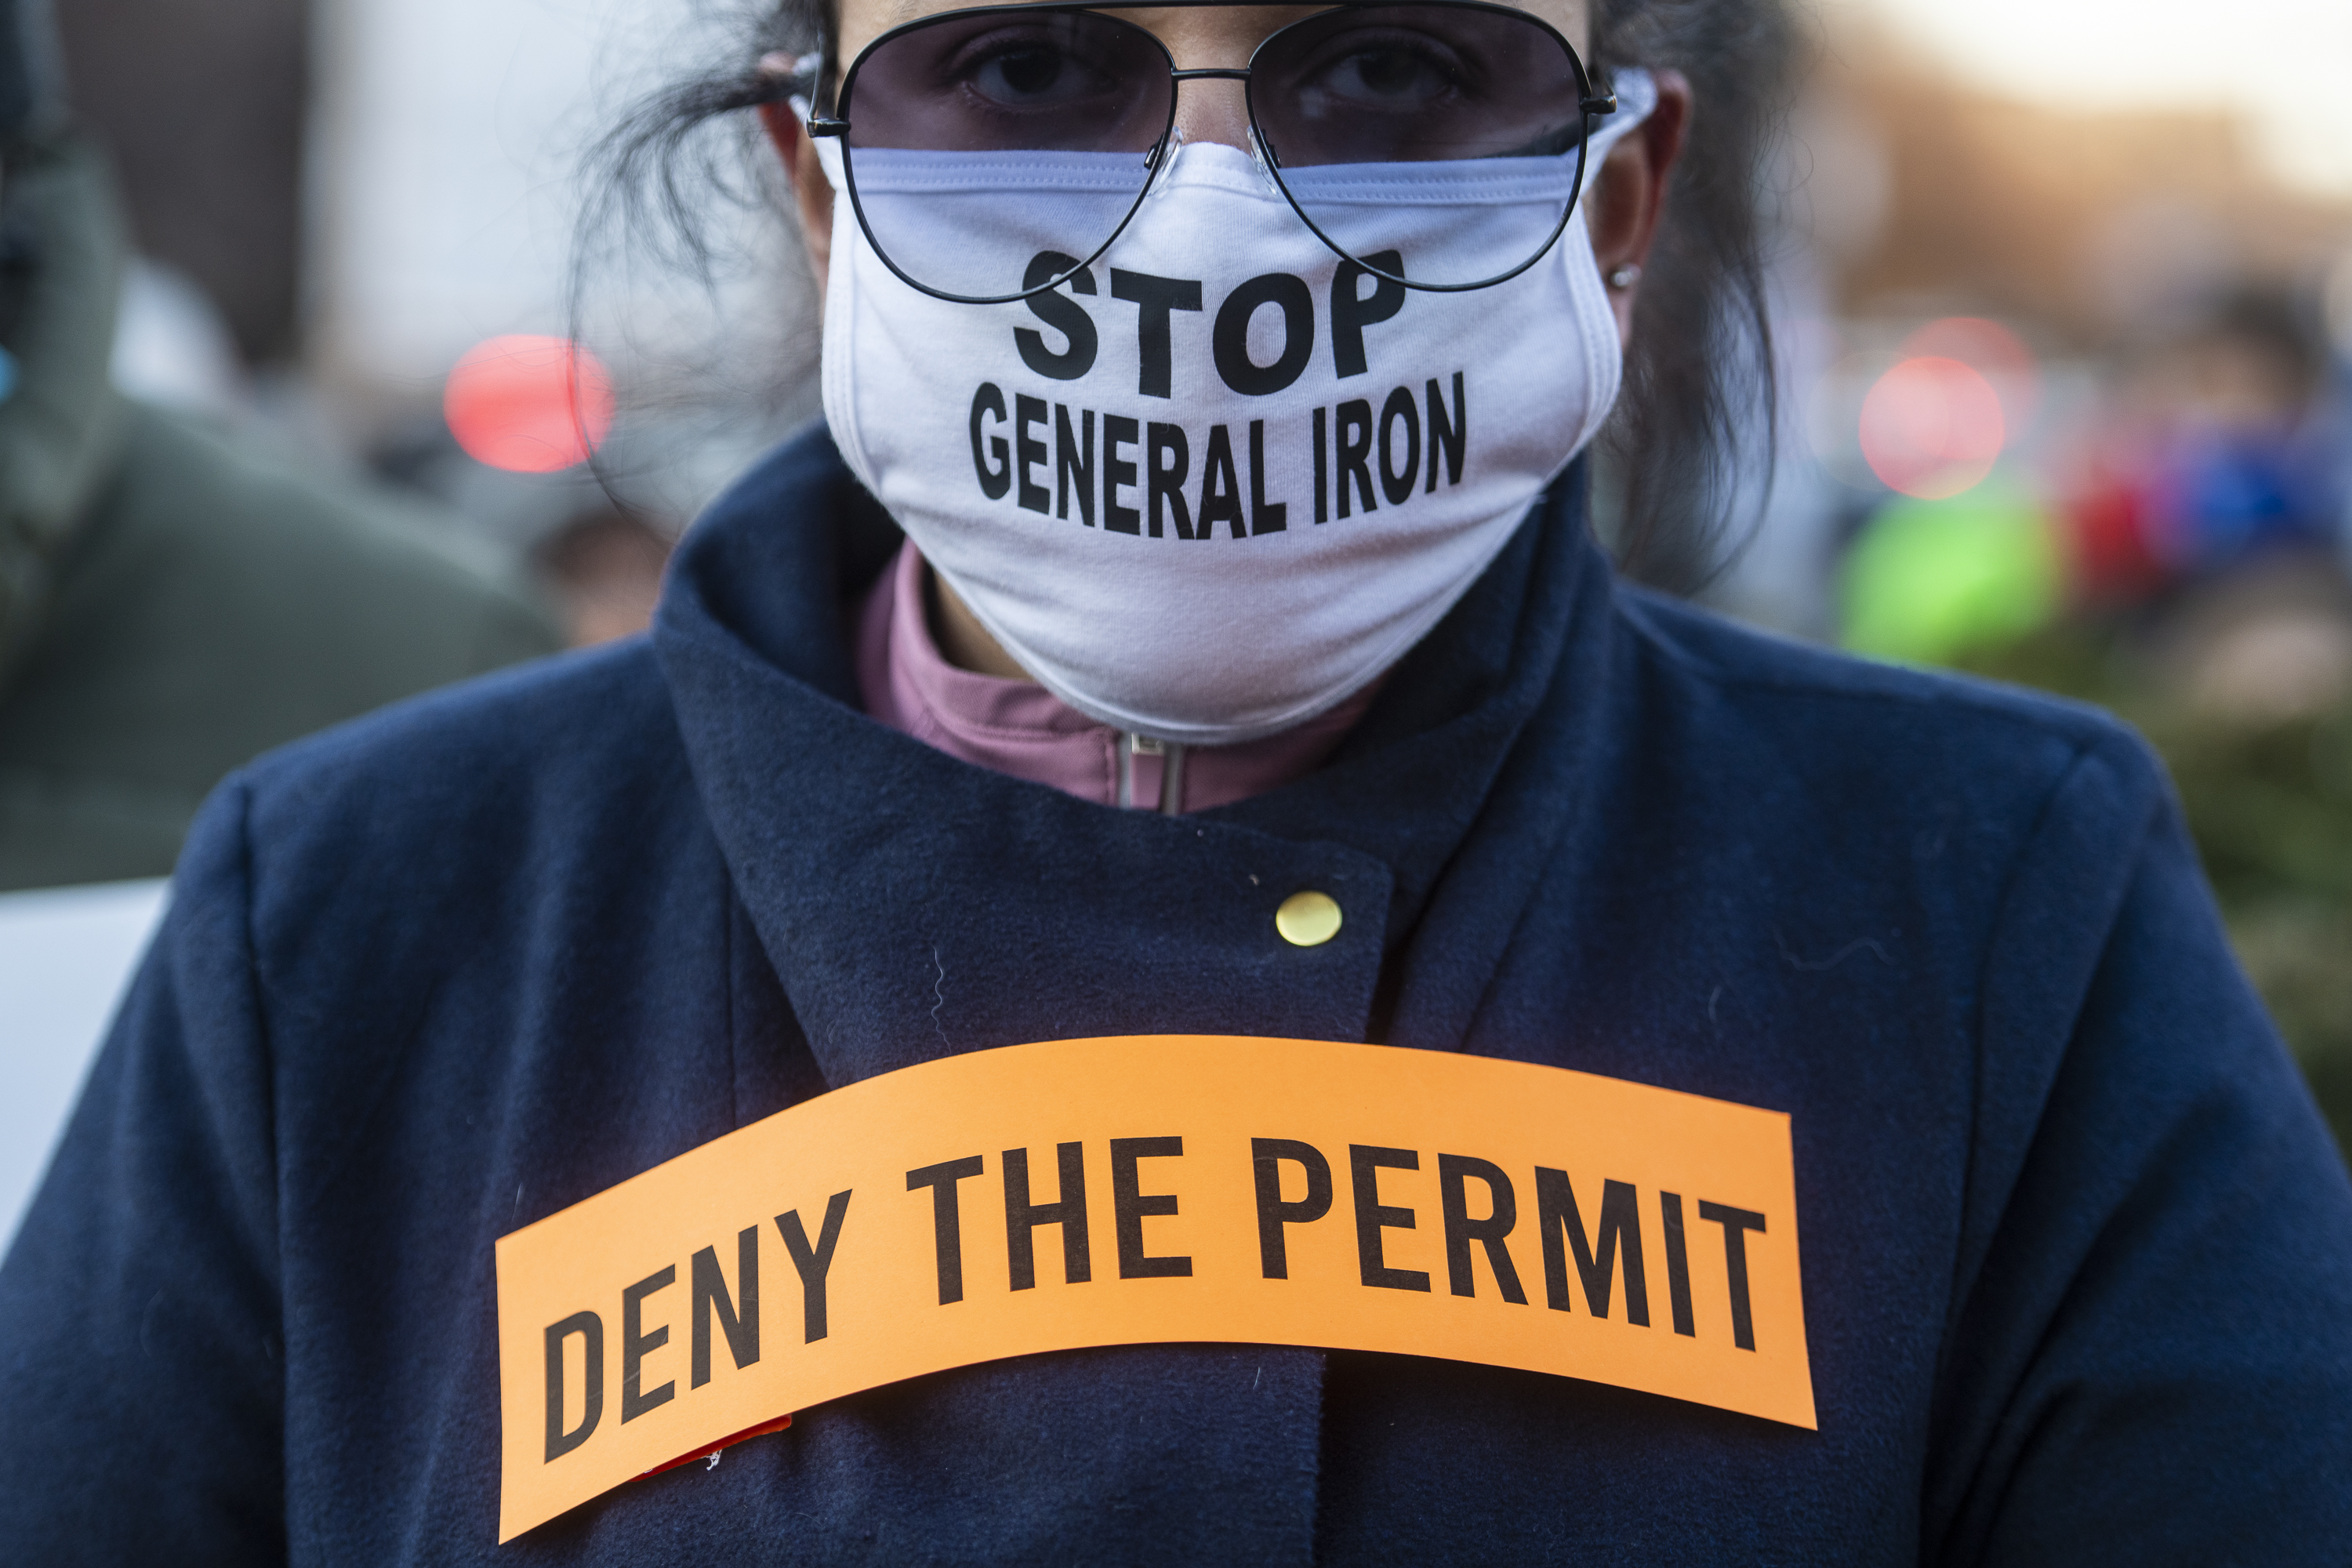 Activists protested the relocation of General Iron to the Southeast Side of Chicago at a gathering near Mayor Lori Lightfoot's home in Logan Square, earlier this year.